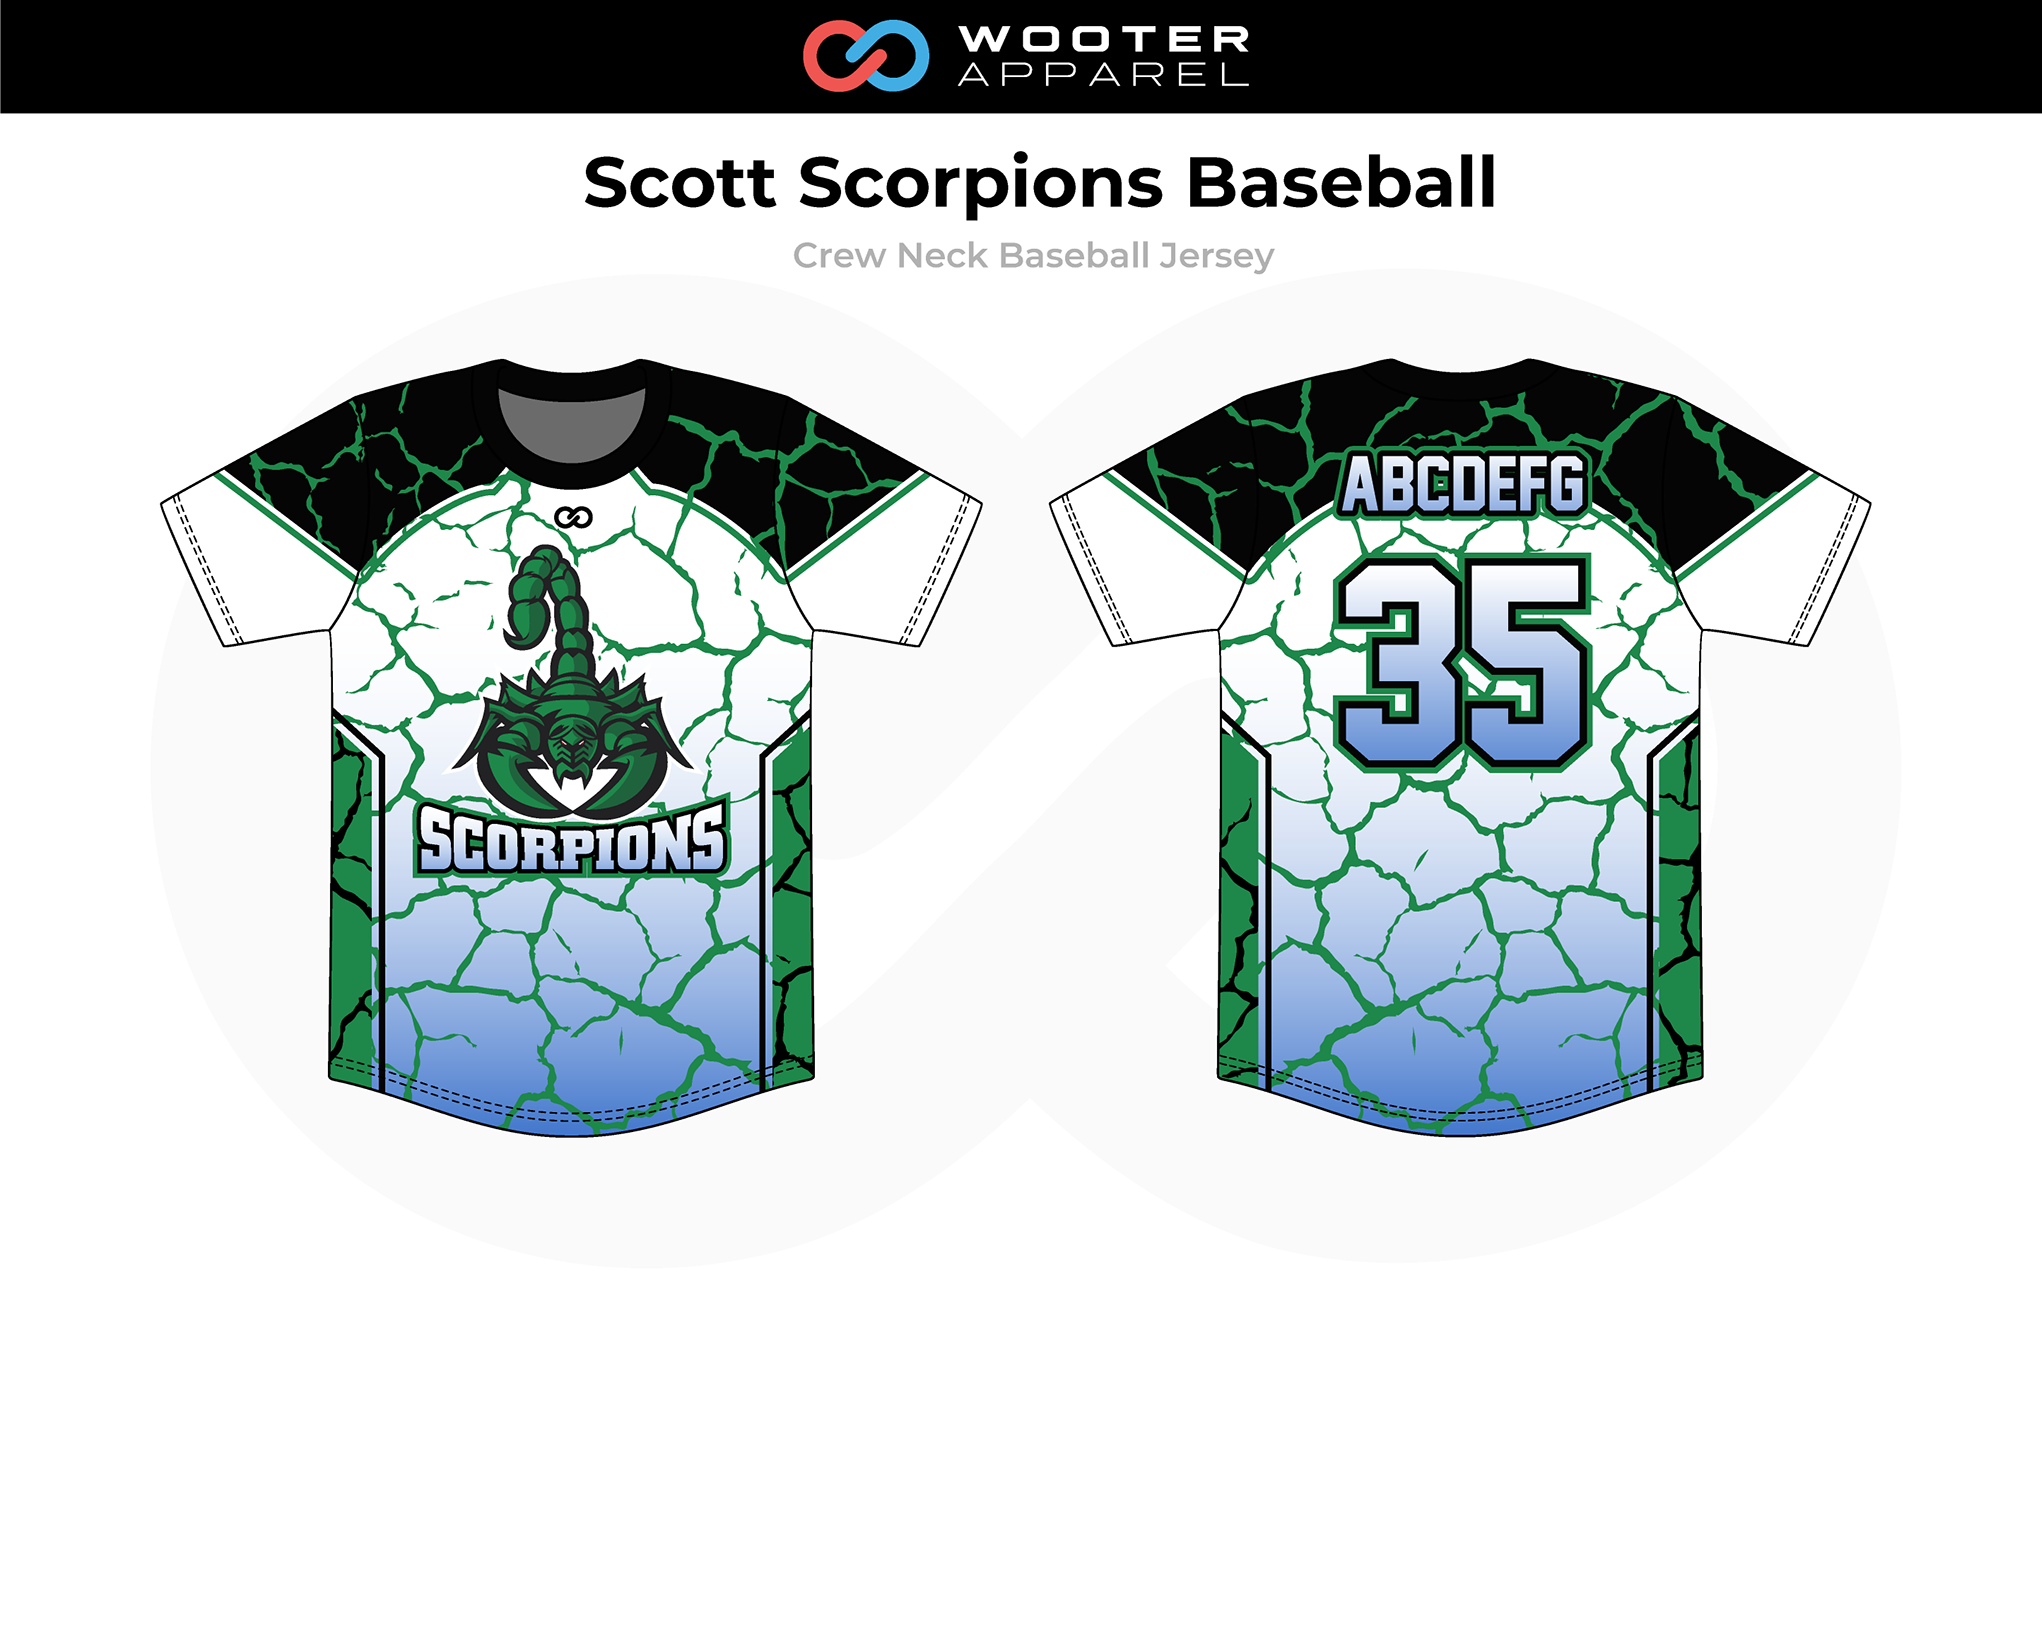 2019-01-28 Scott Scorpions Baseball Jersey (Cracked).png